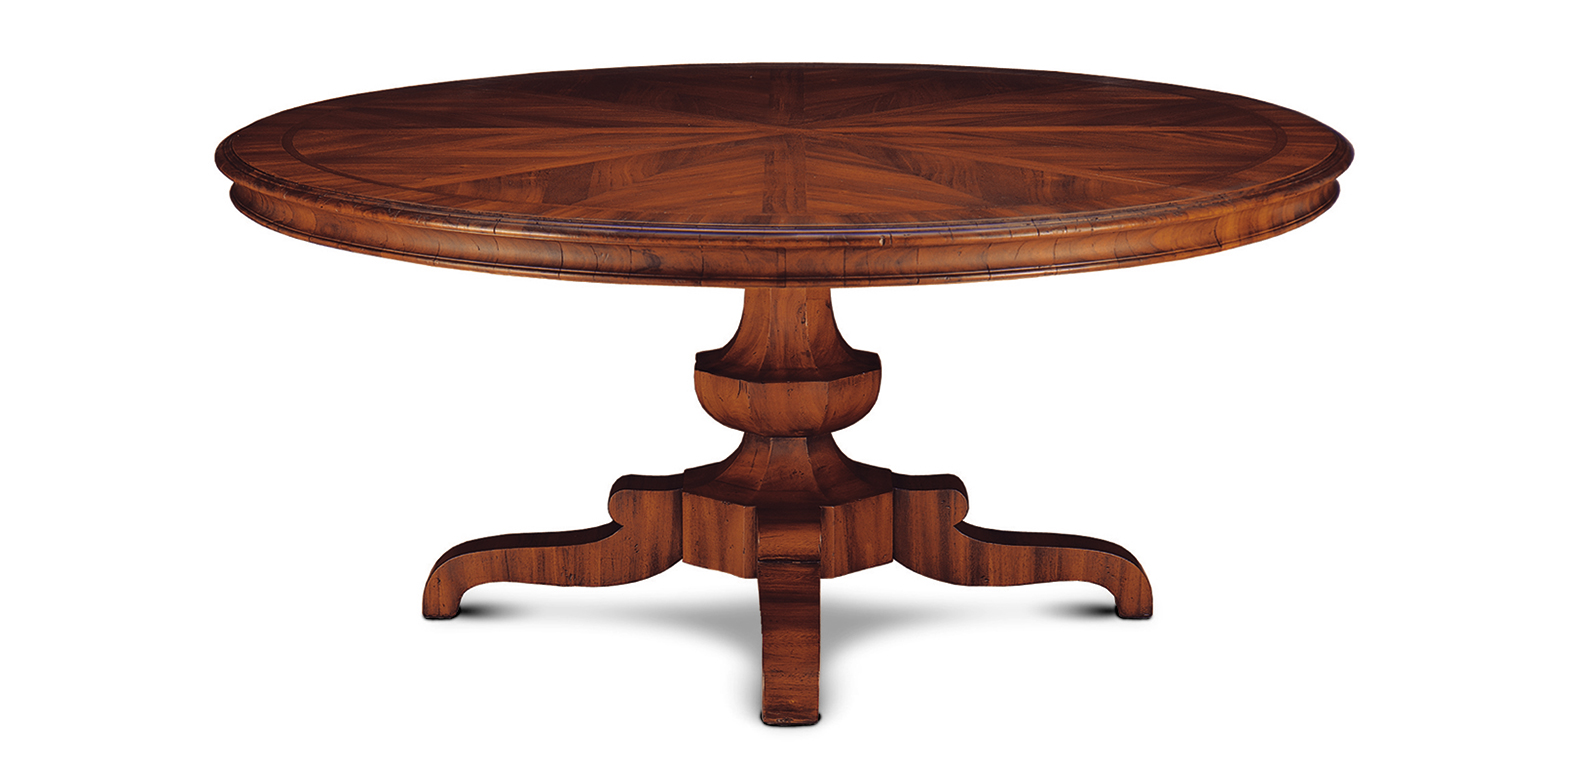 PALAFOXIANA DINING TABLE 180